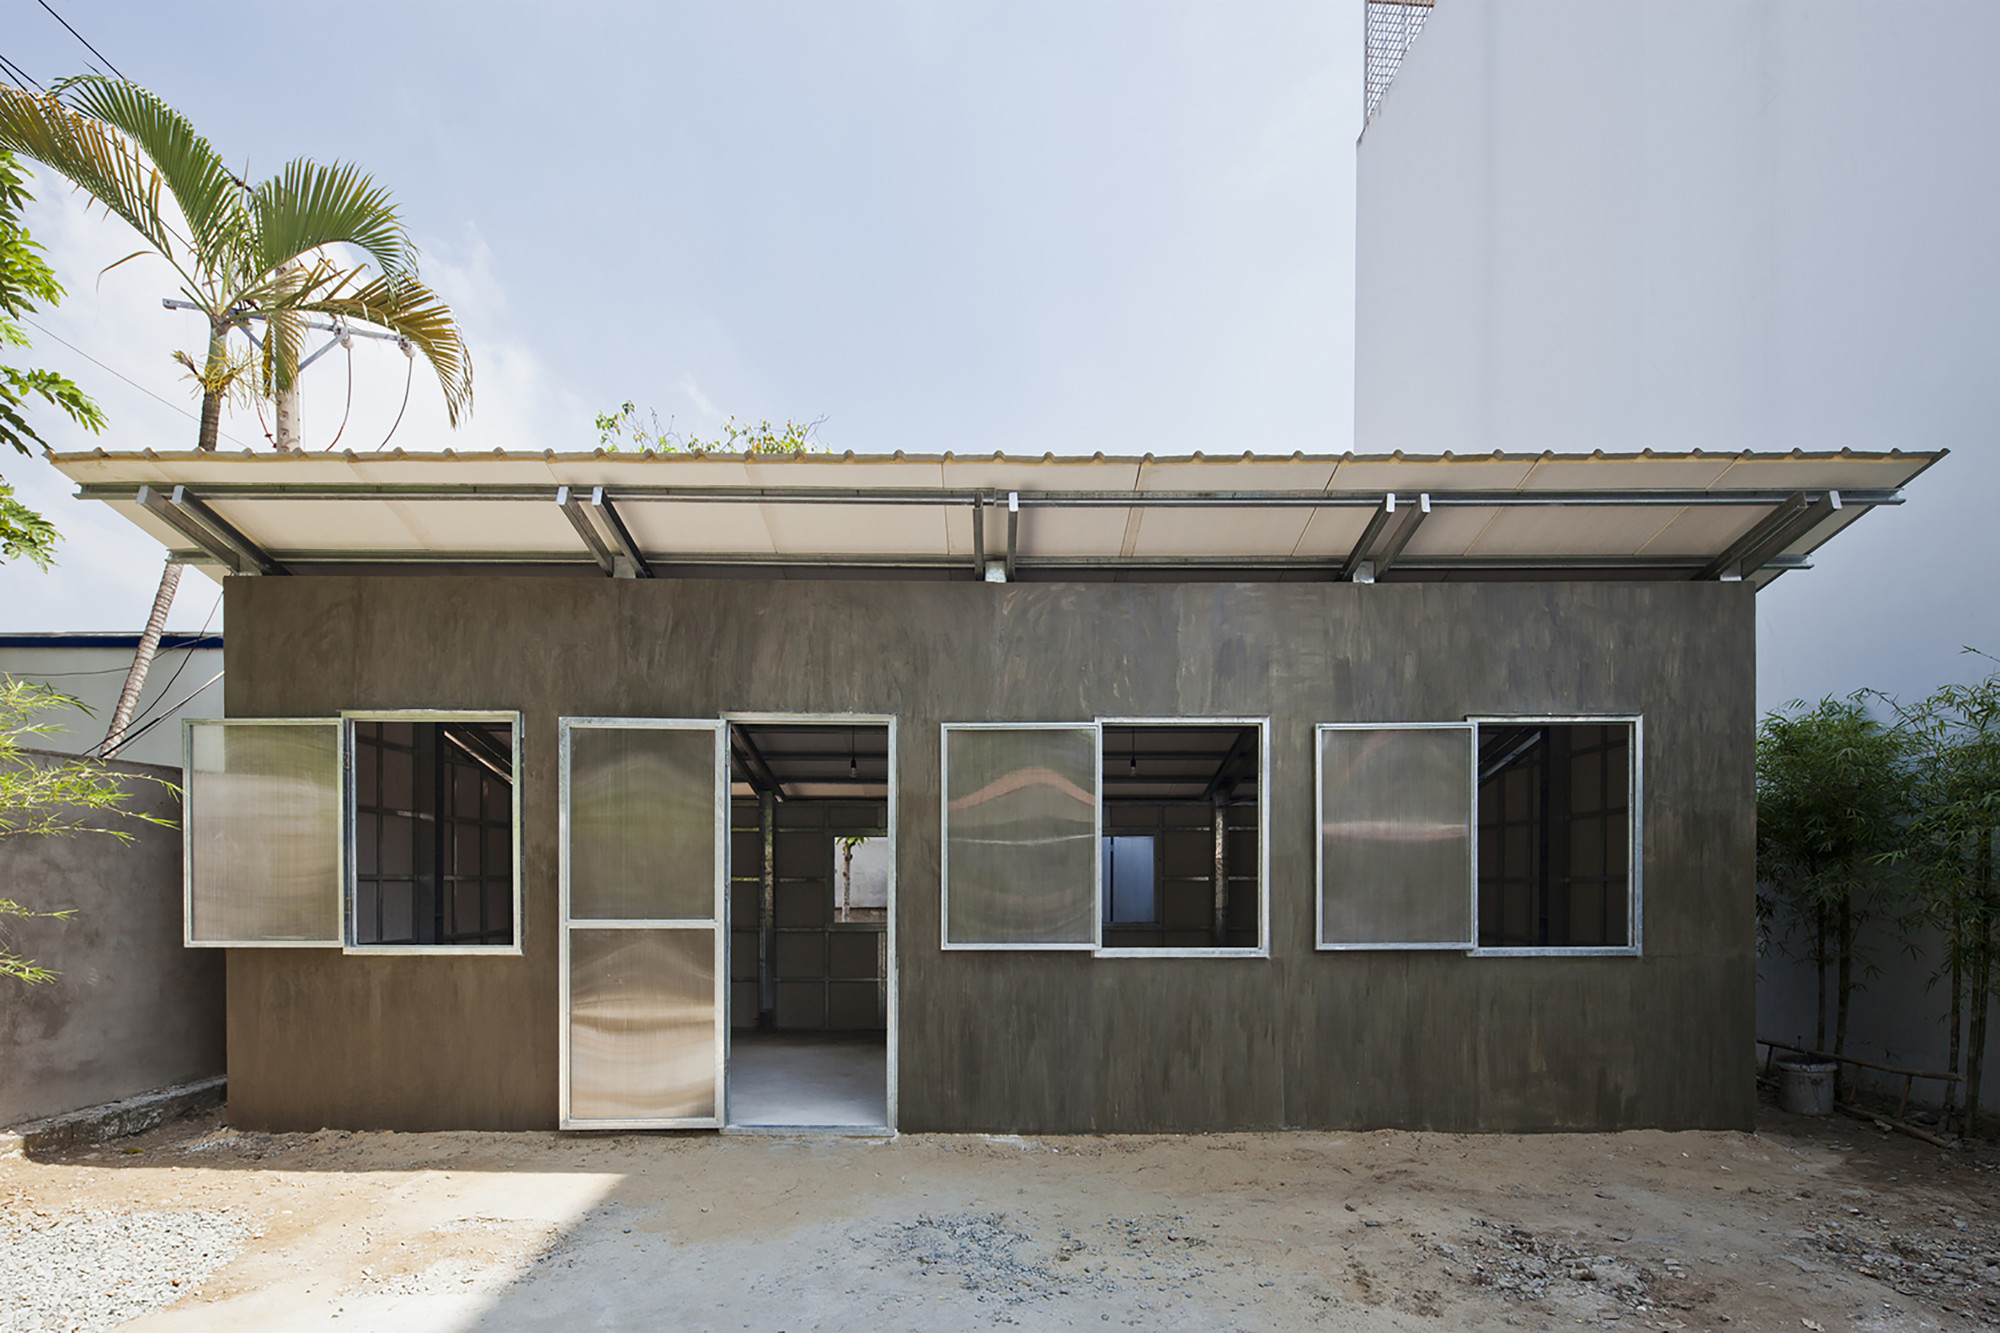 S house 3 vo trong nghia architects archdaily for Low cost building